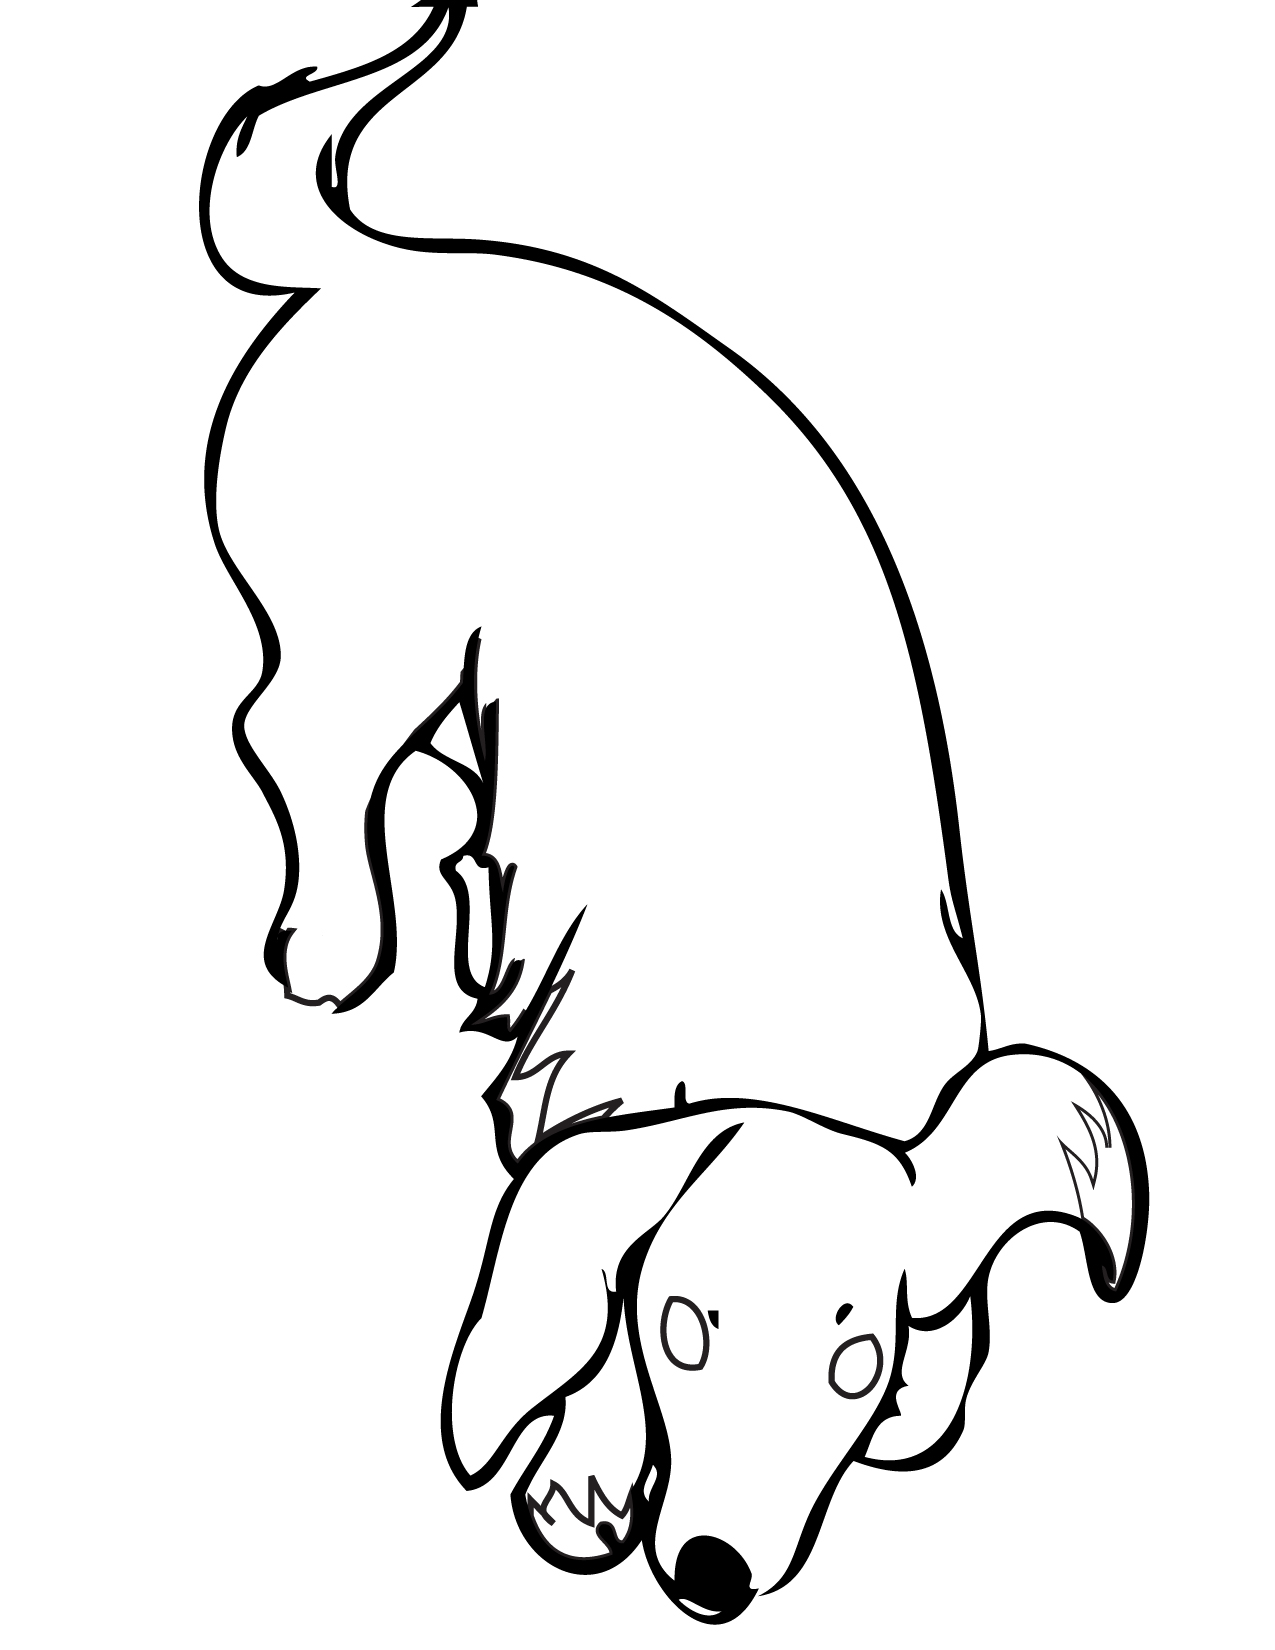 weenie dogs coloring pages - photo#27